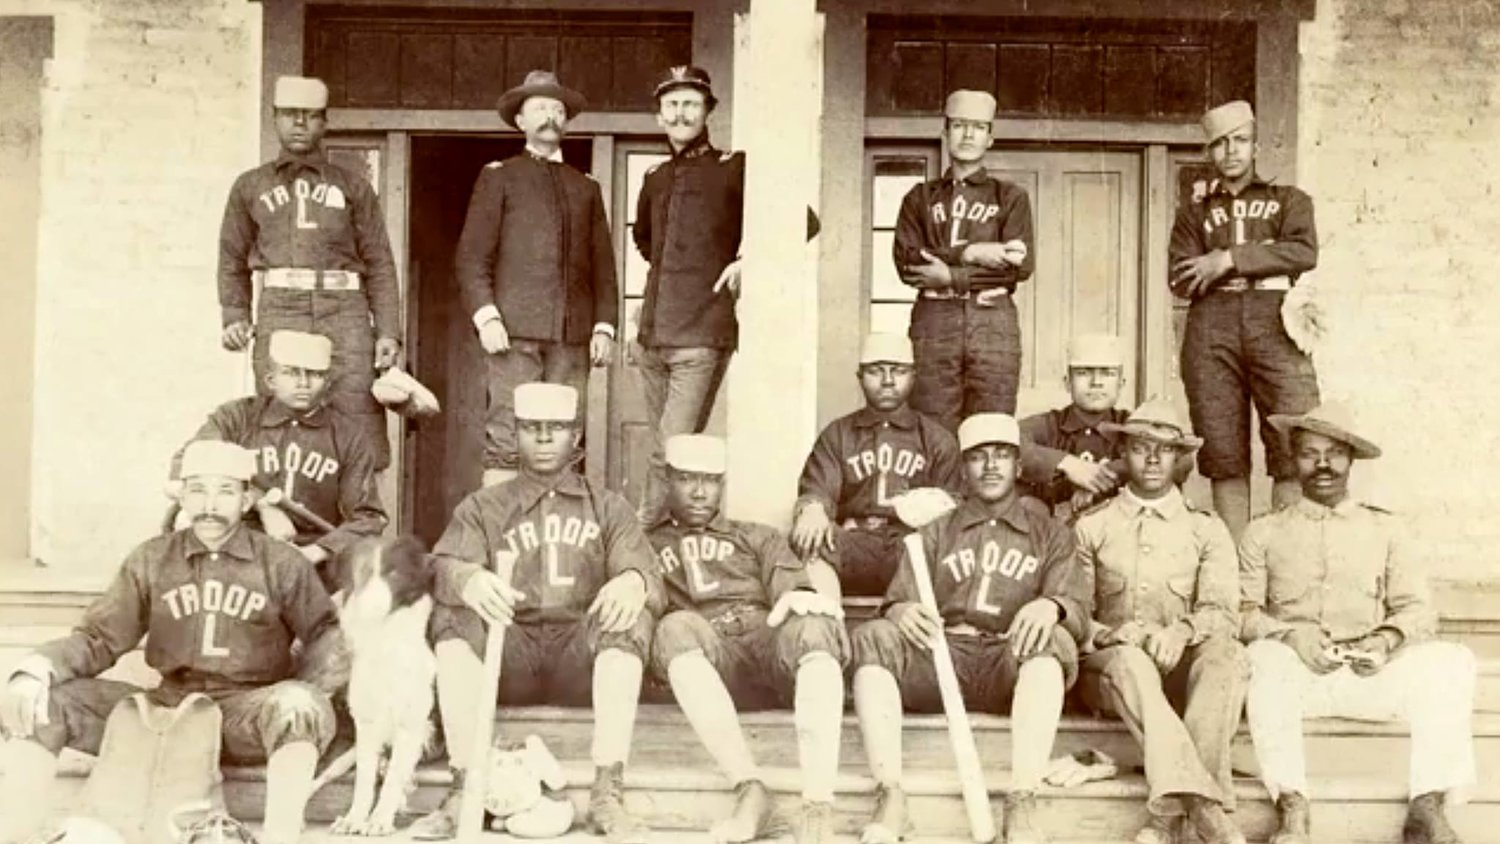 The 10th Cavalry Buffalo Soldiers Team at Fort Bayard in the 1890s.